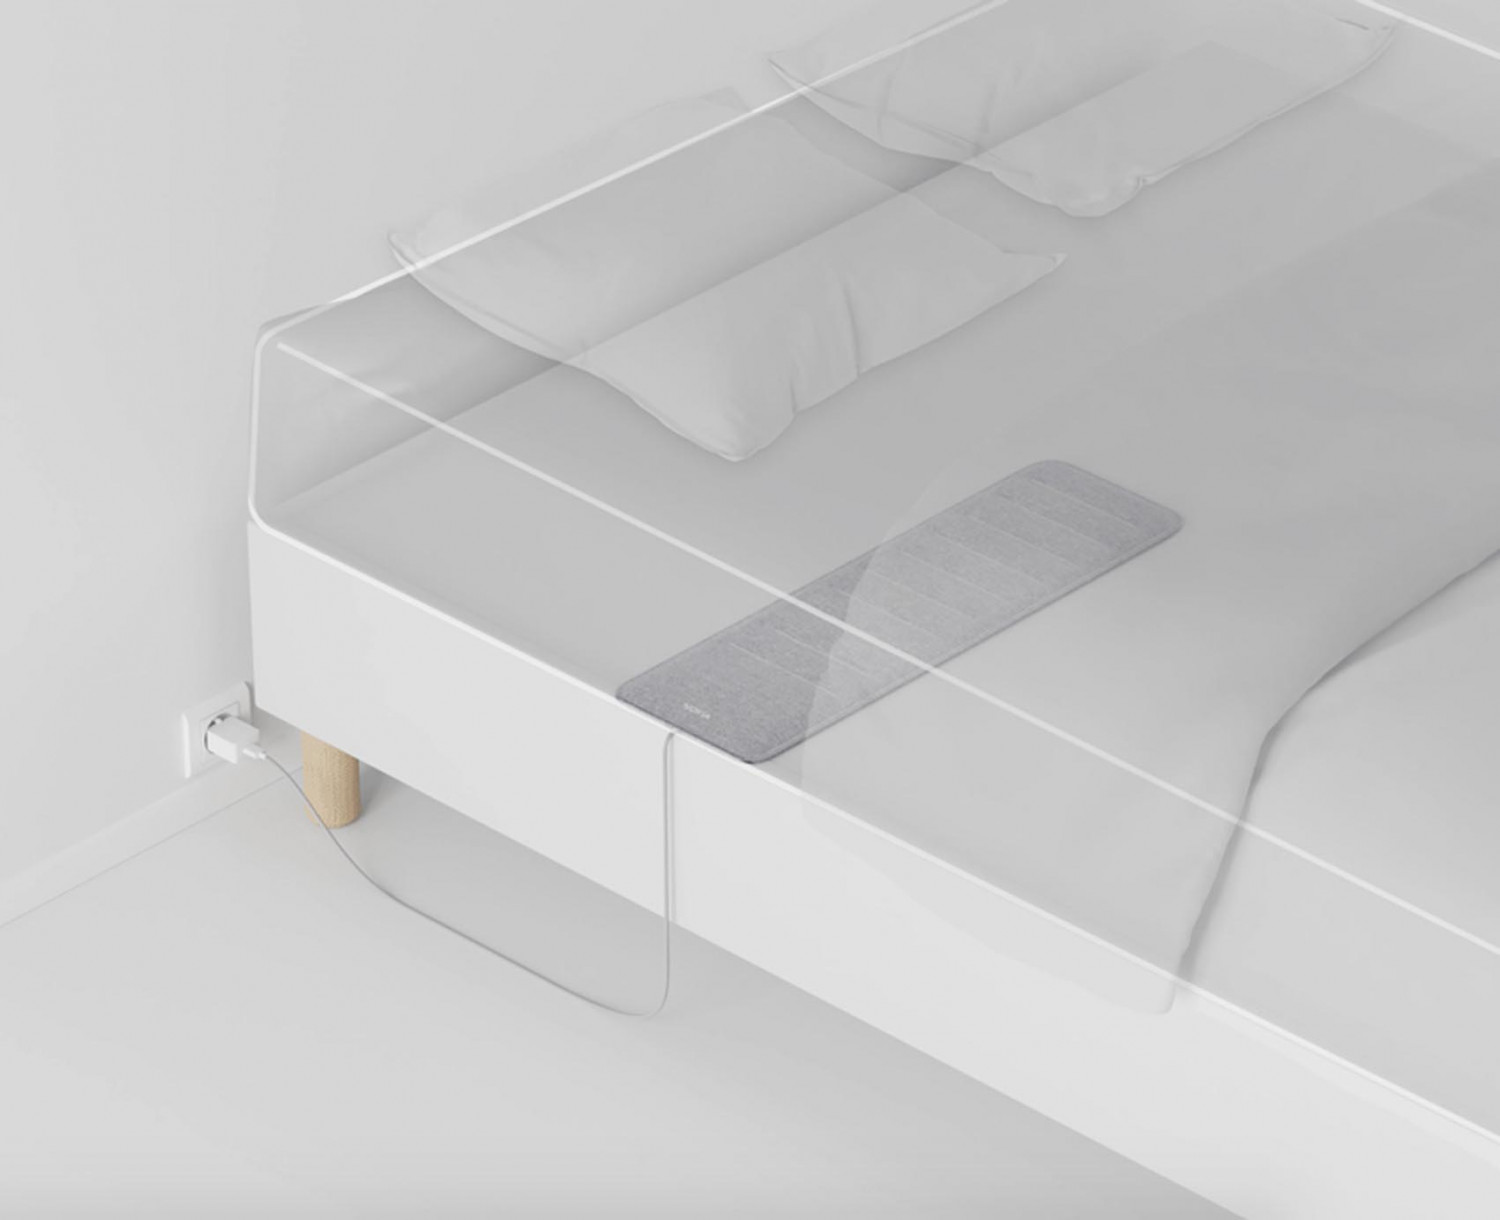 Nokia has made this sleep mattress it helps you track your heart rate, analyses your sleep cycles and detects snoring.